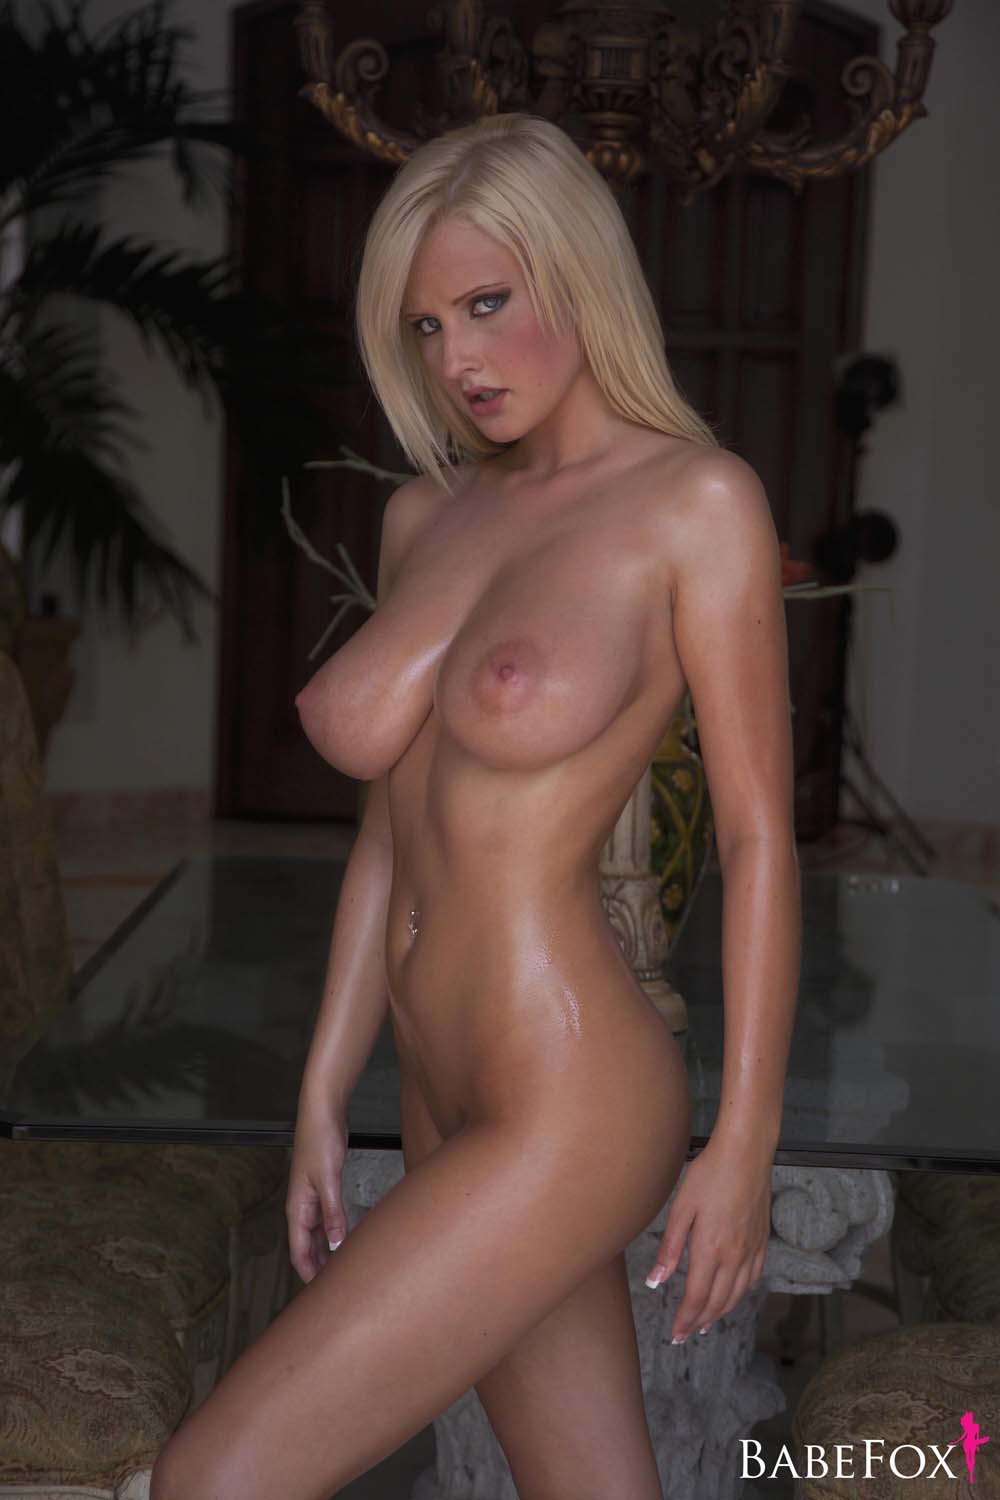 michelle-marsh-nude-videos-nude